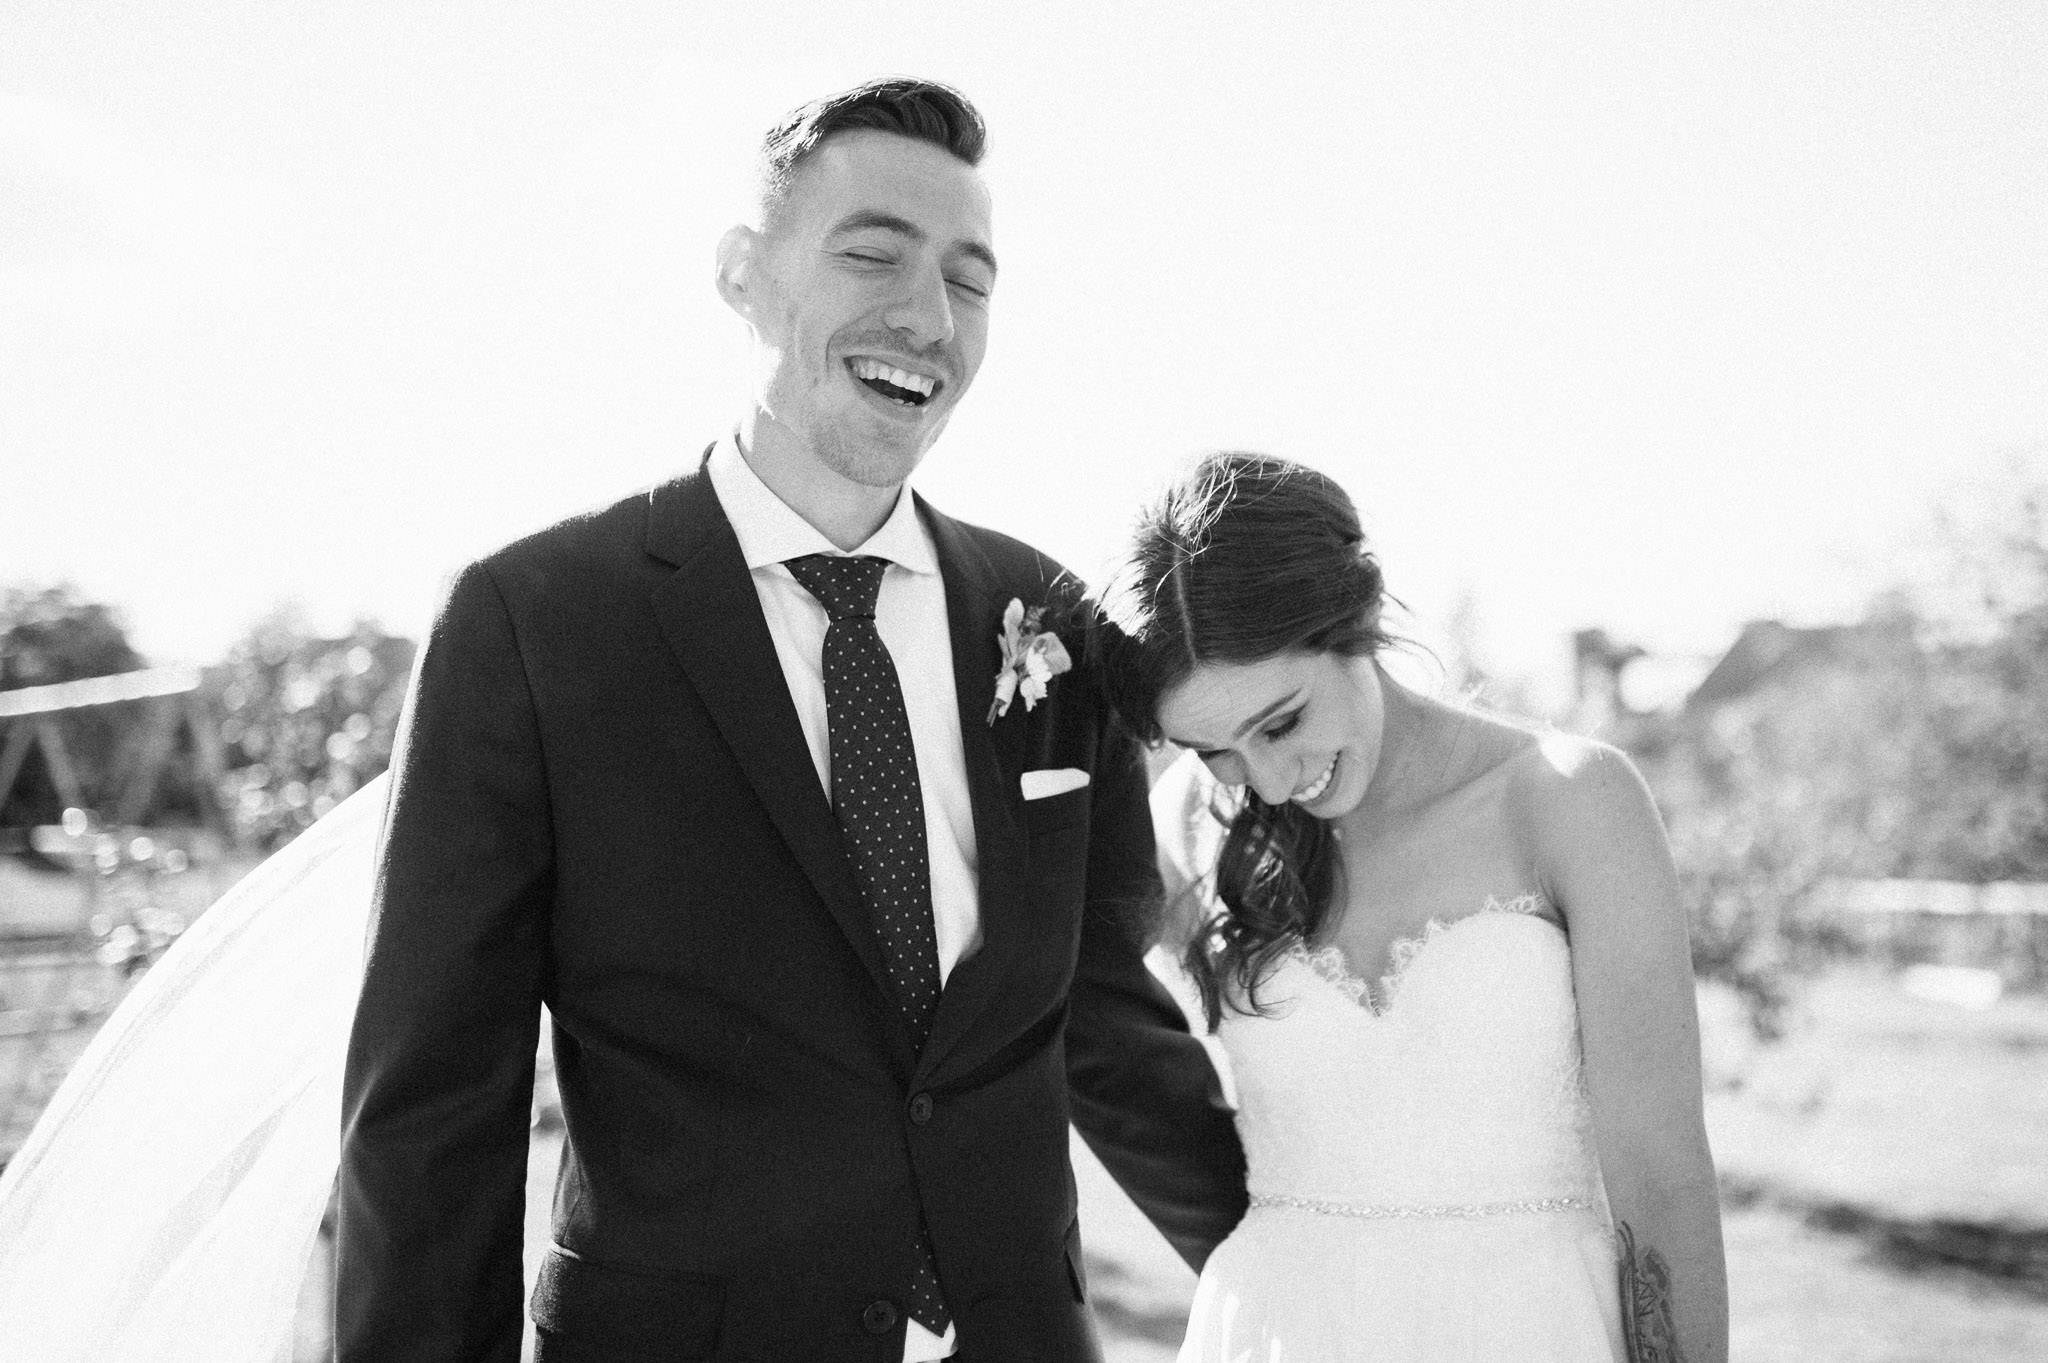 Candid Vancouver wedding photography - bride and groom portraits